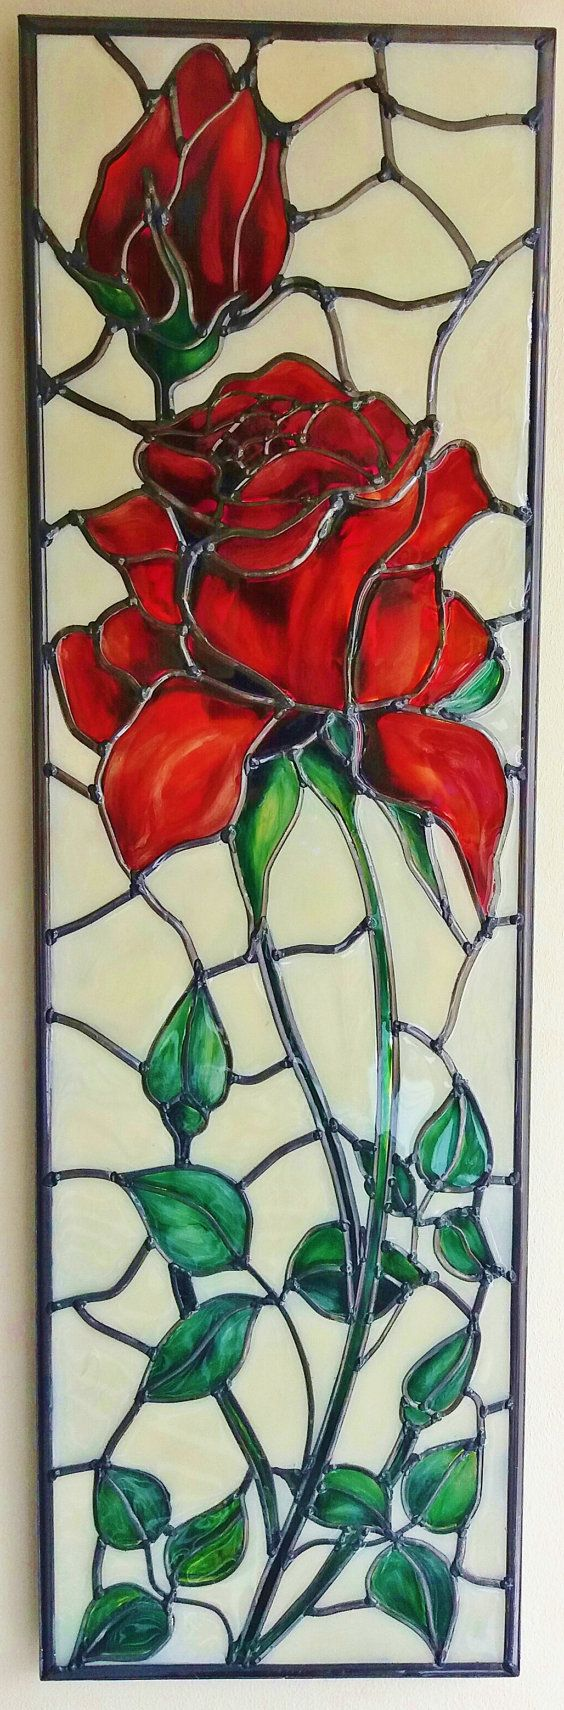 Red Rose ~ A bespoke Art Nouveau ~ Tiffany style and inspired 'Rose' leaded, stained glass effect decorative wall panel. By Douglas Payne.